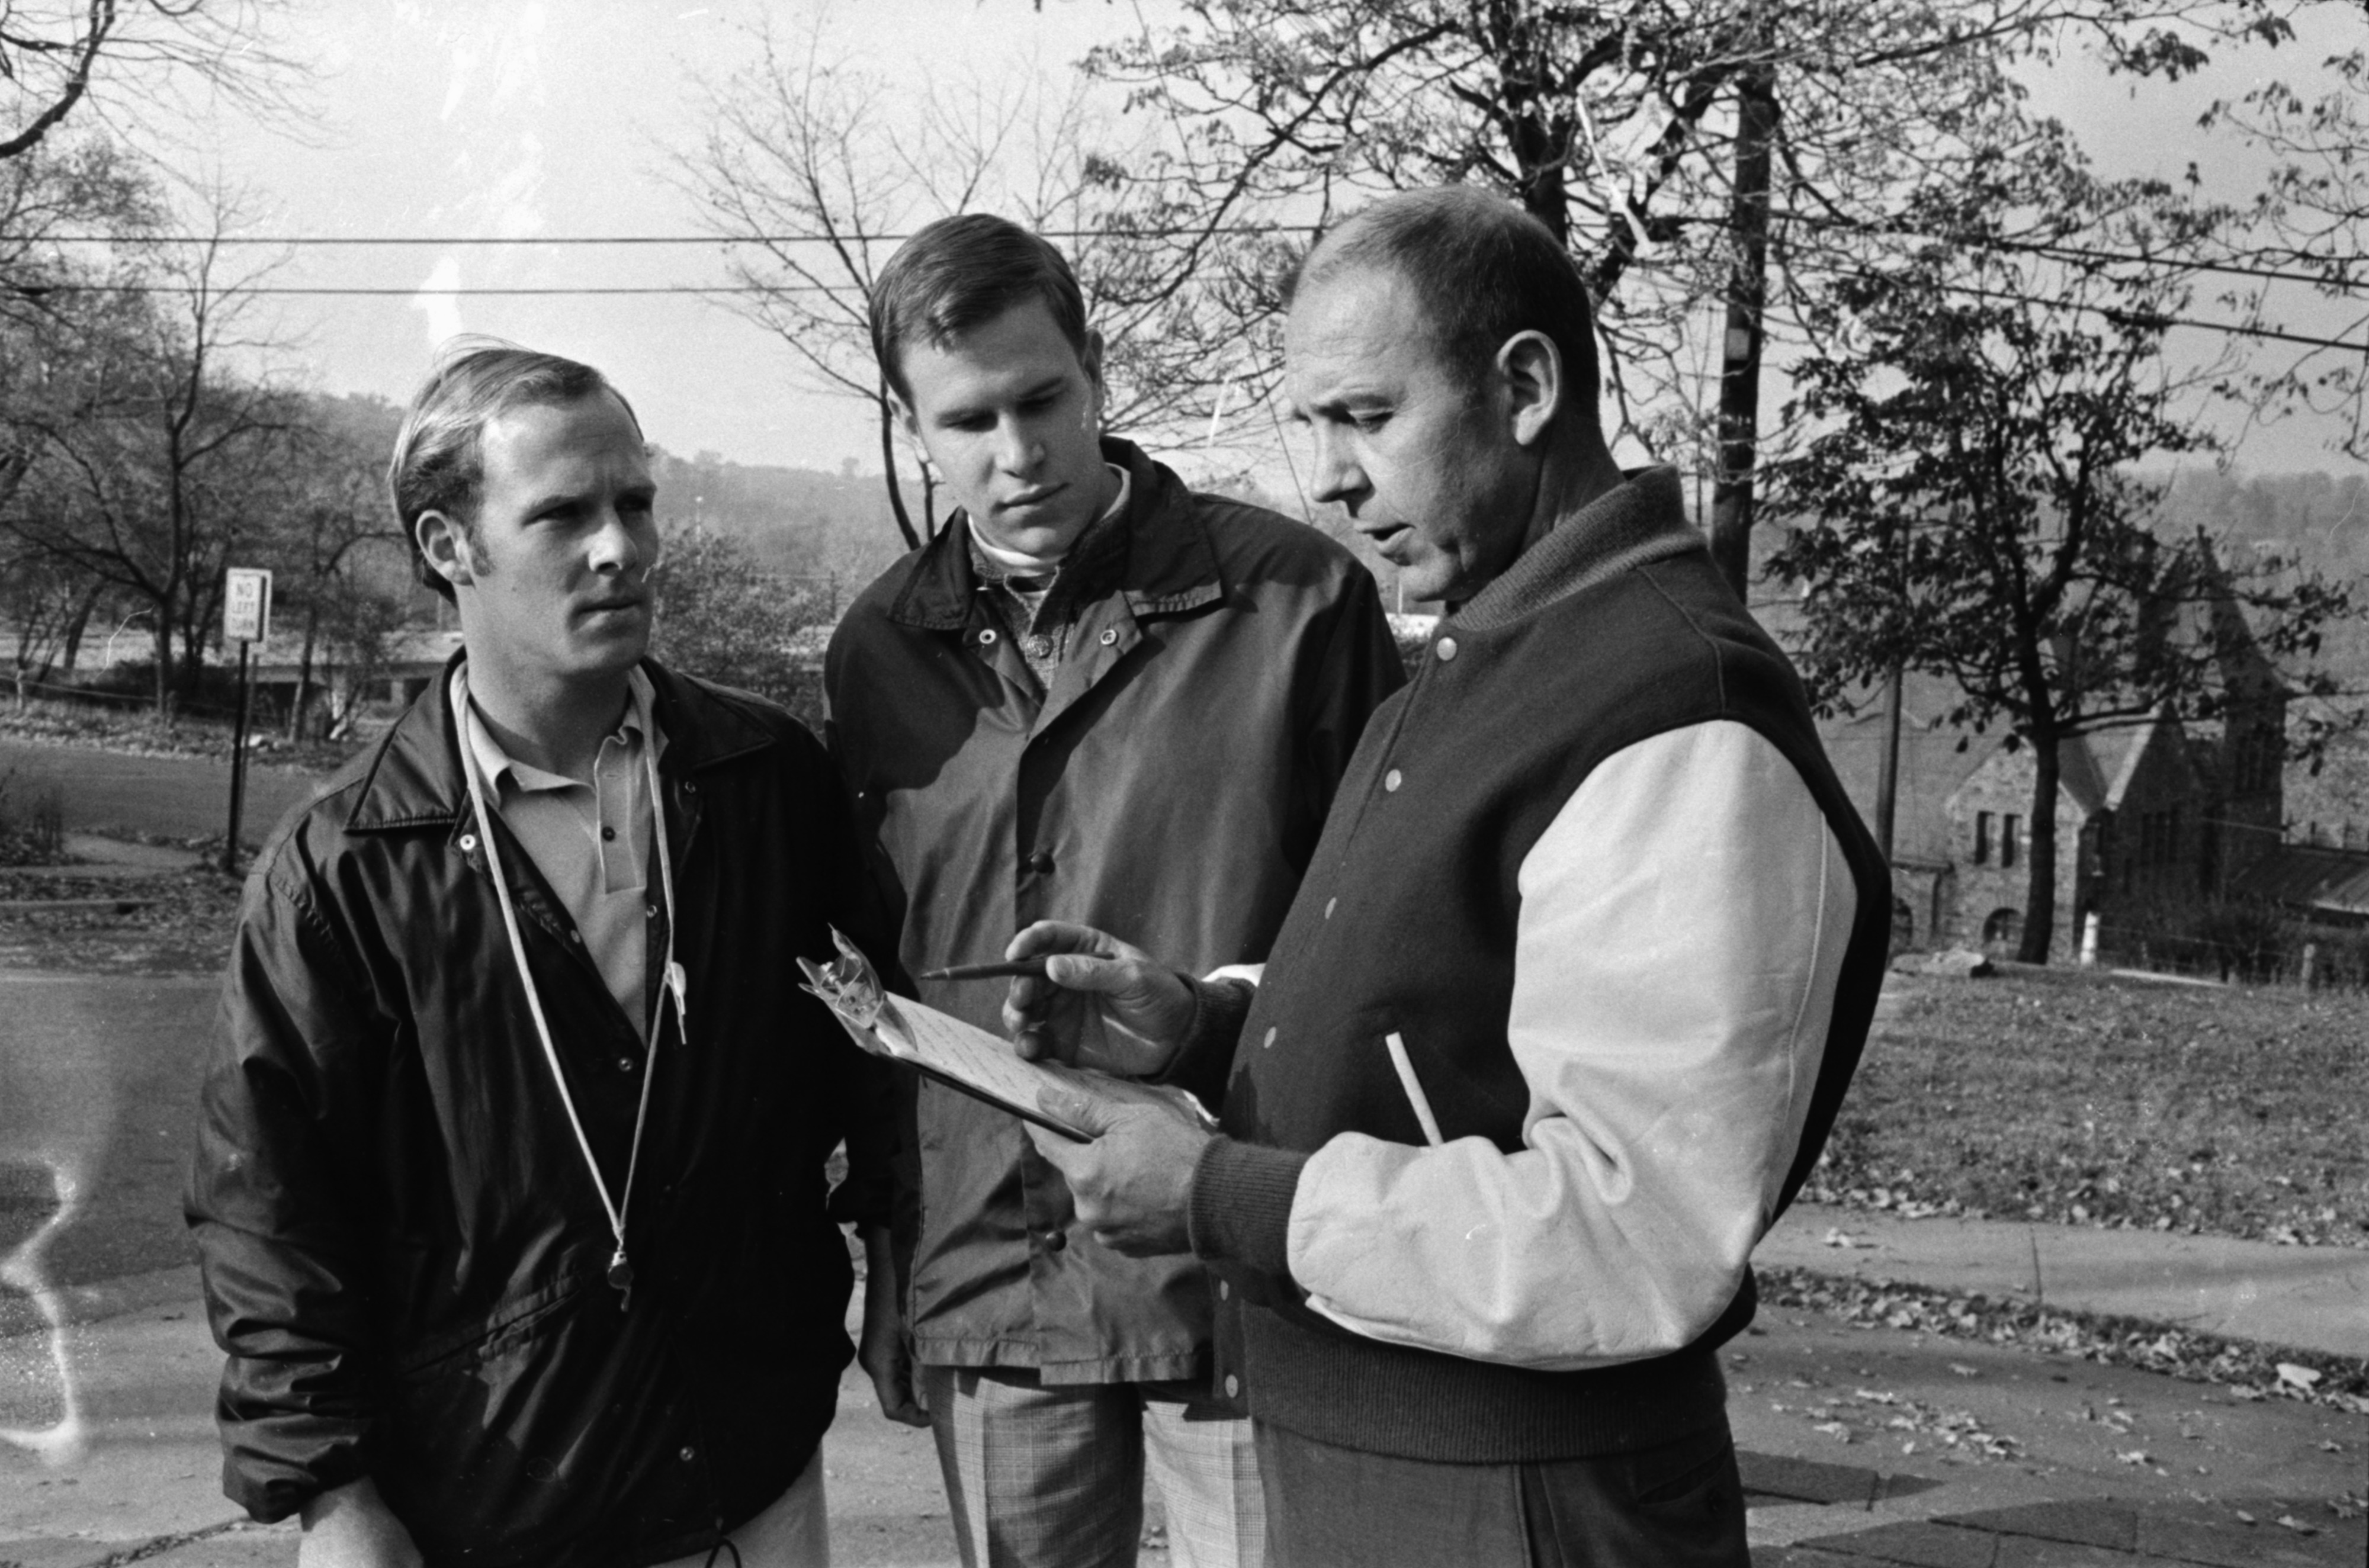 Coach and Assistant Coaches at St. Thomas the Apostle School: Making a Plan, November 1969 image